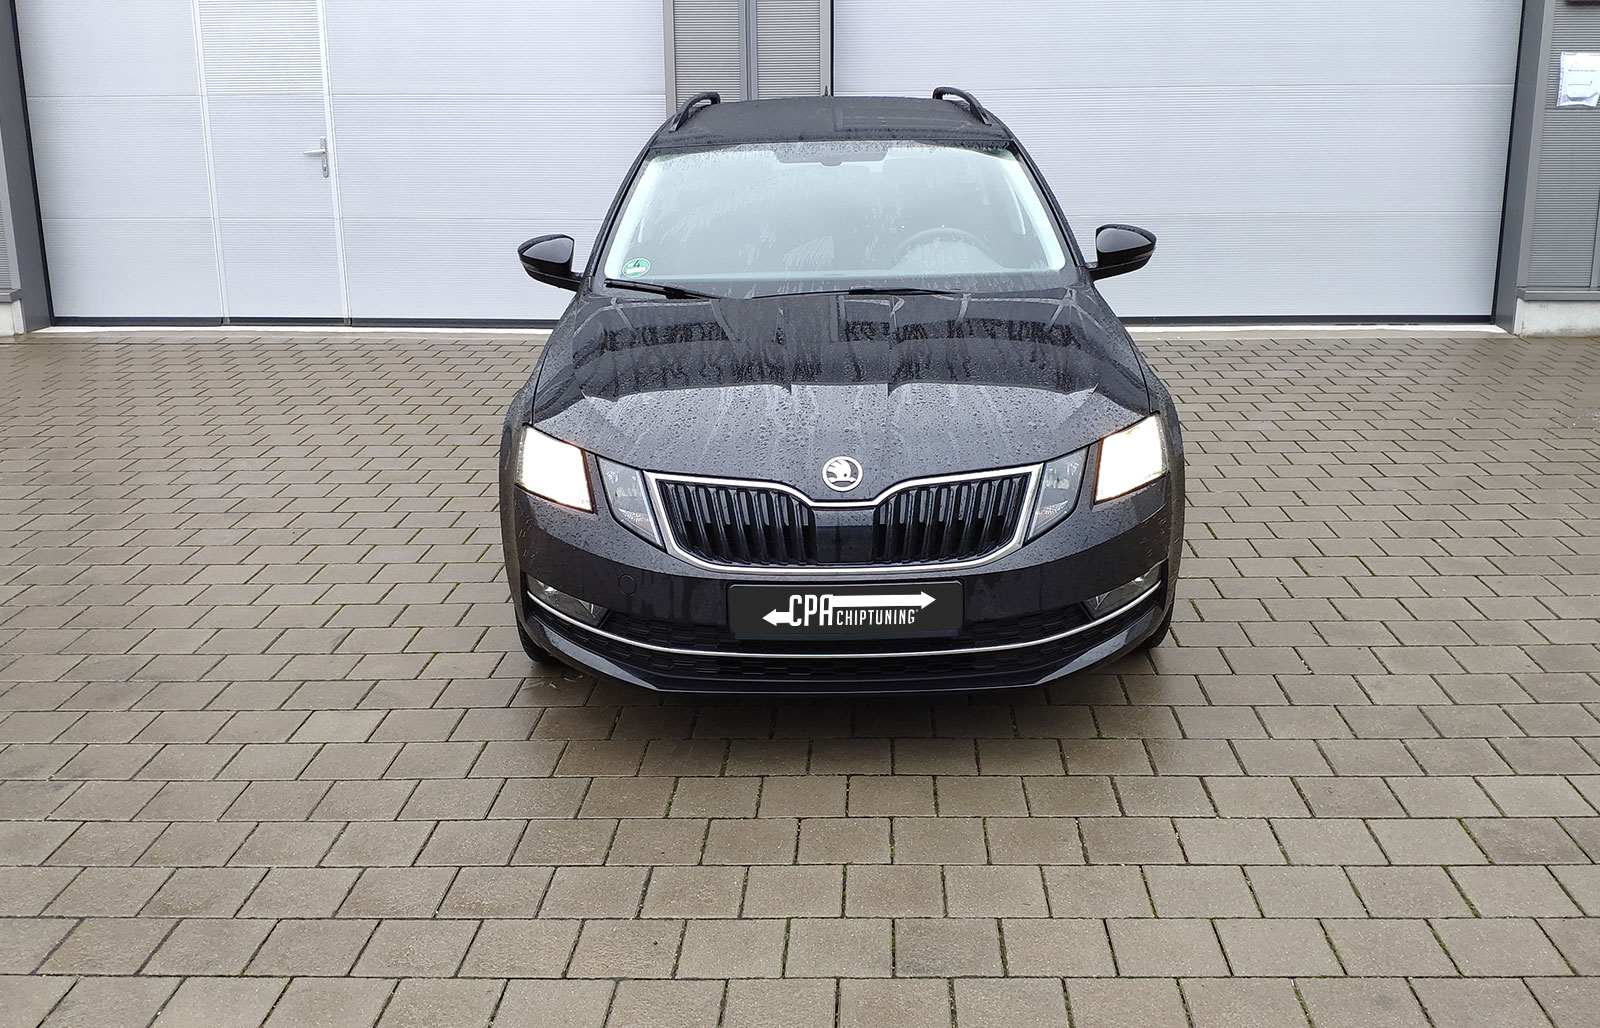 Skoda Octavia 1.0 TSI chiptuning - get more out of your liter!